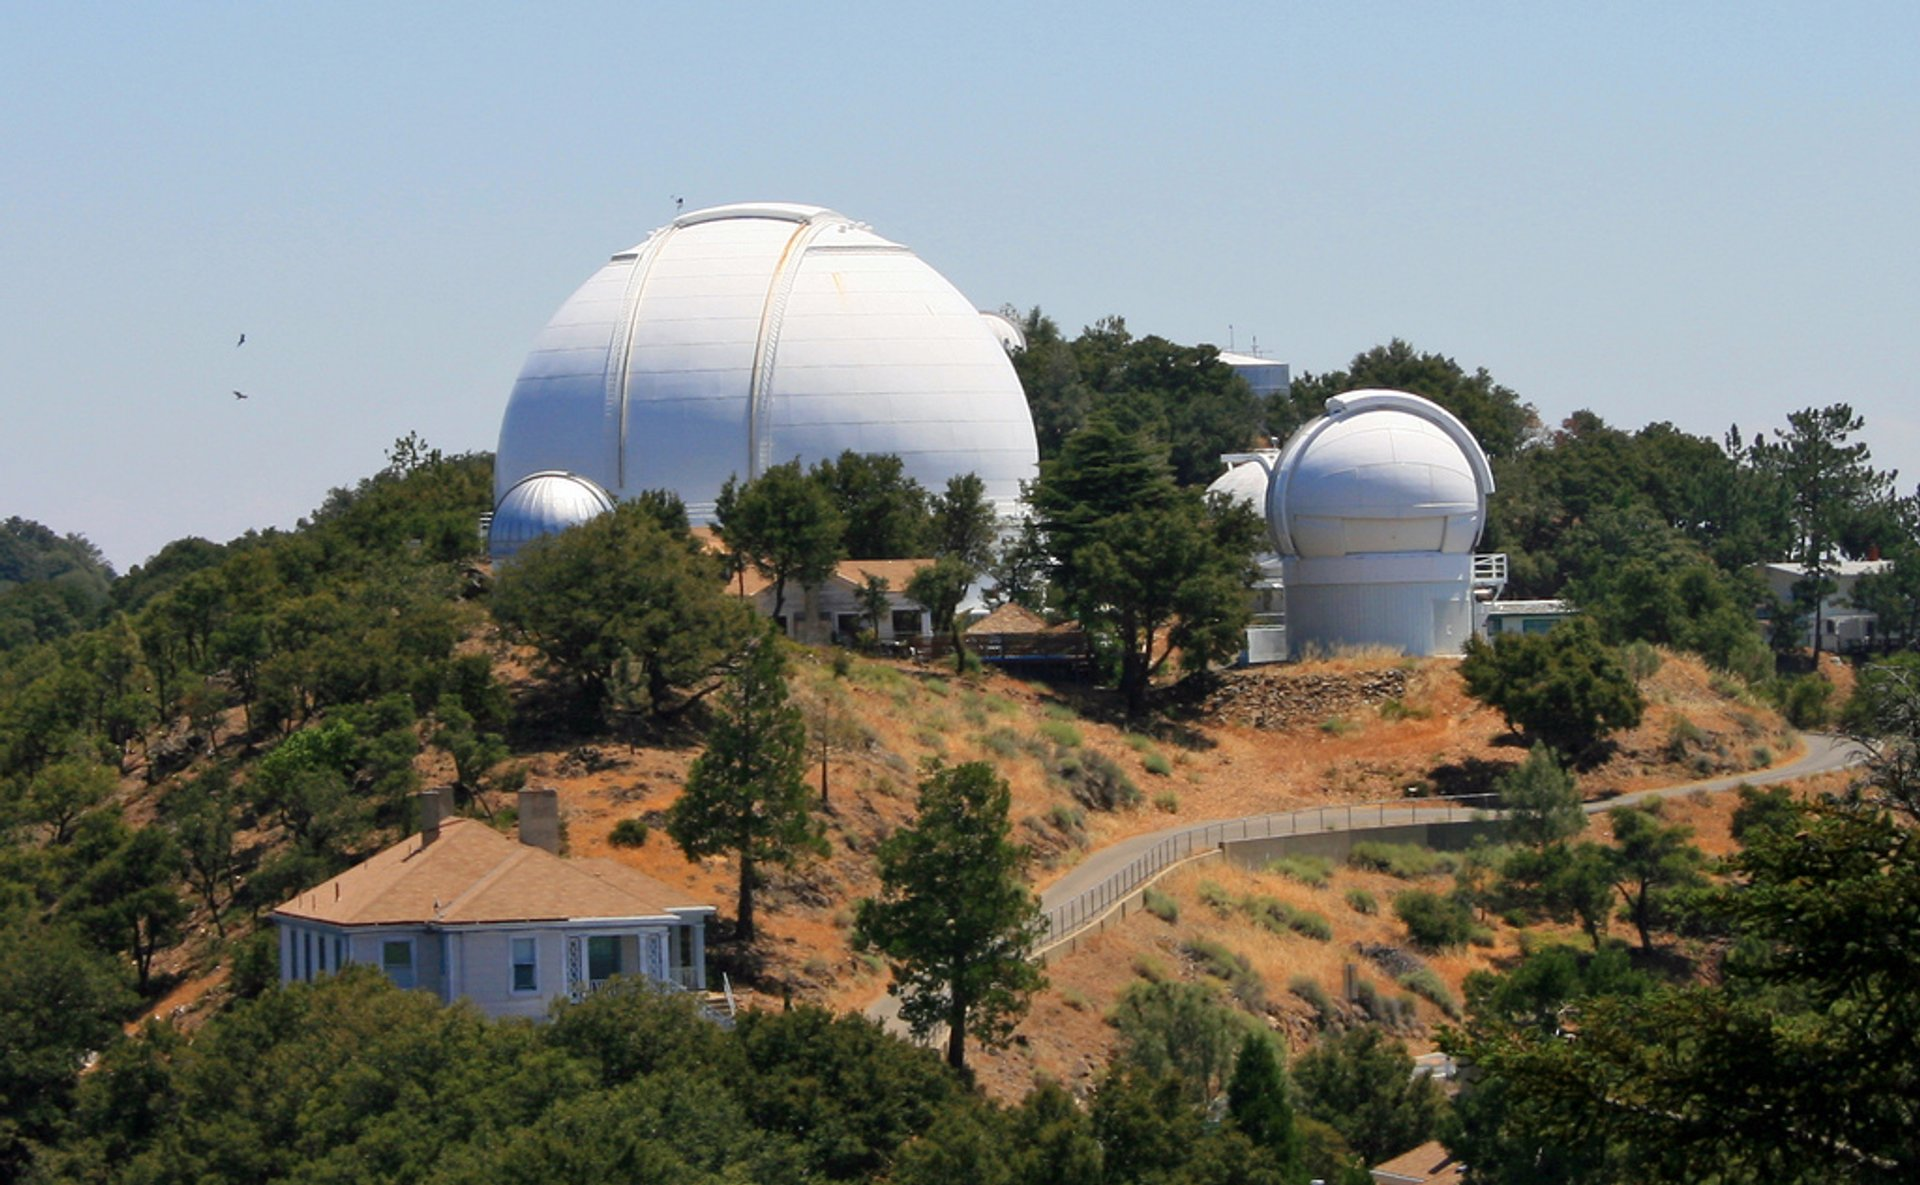 Lick Observatory in California 2020 - Best Time